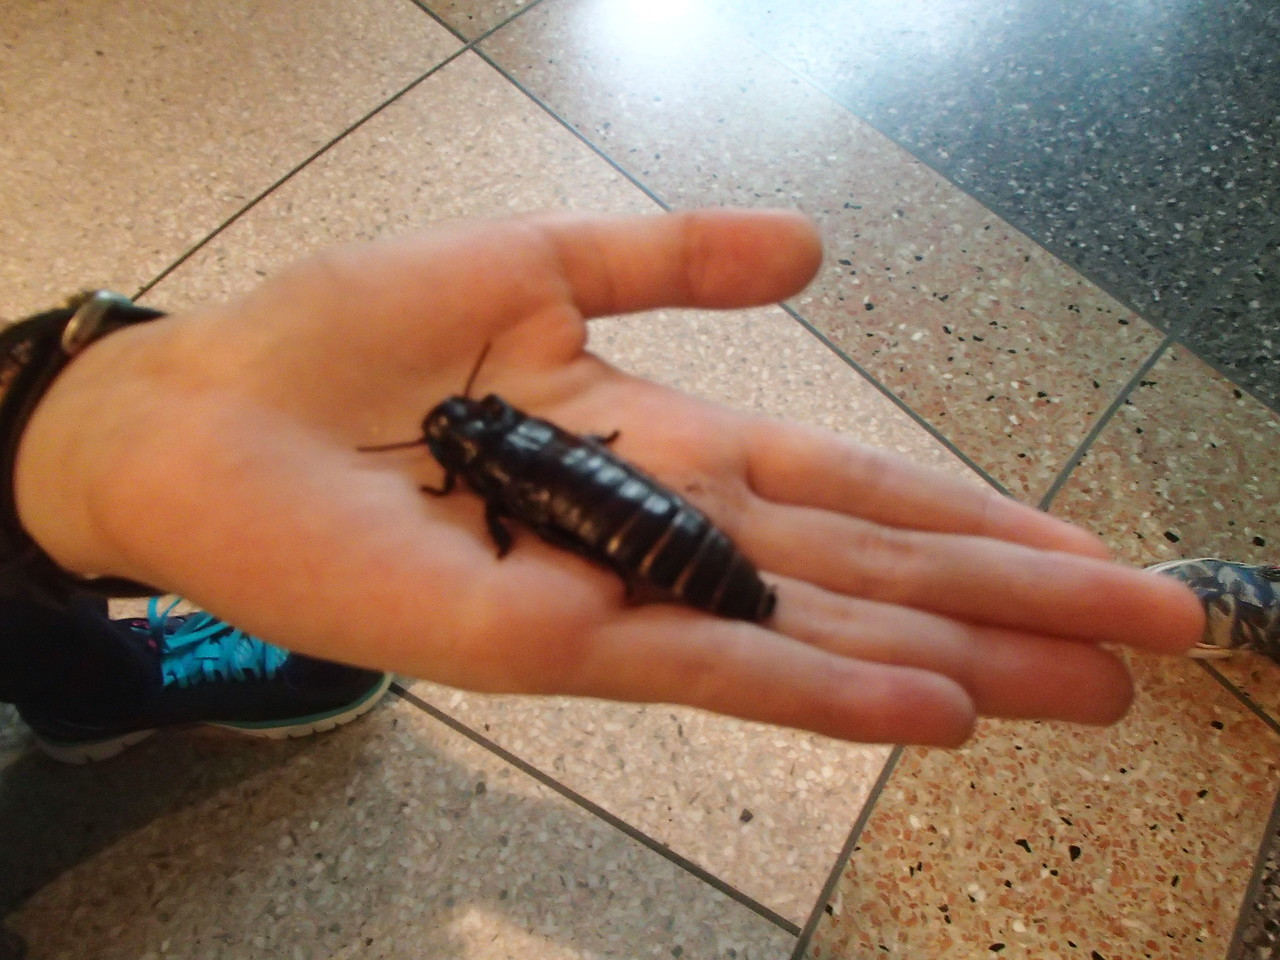 Hissing Roach out on display